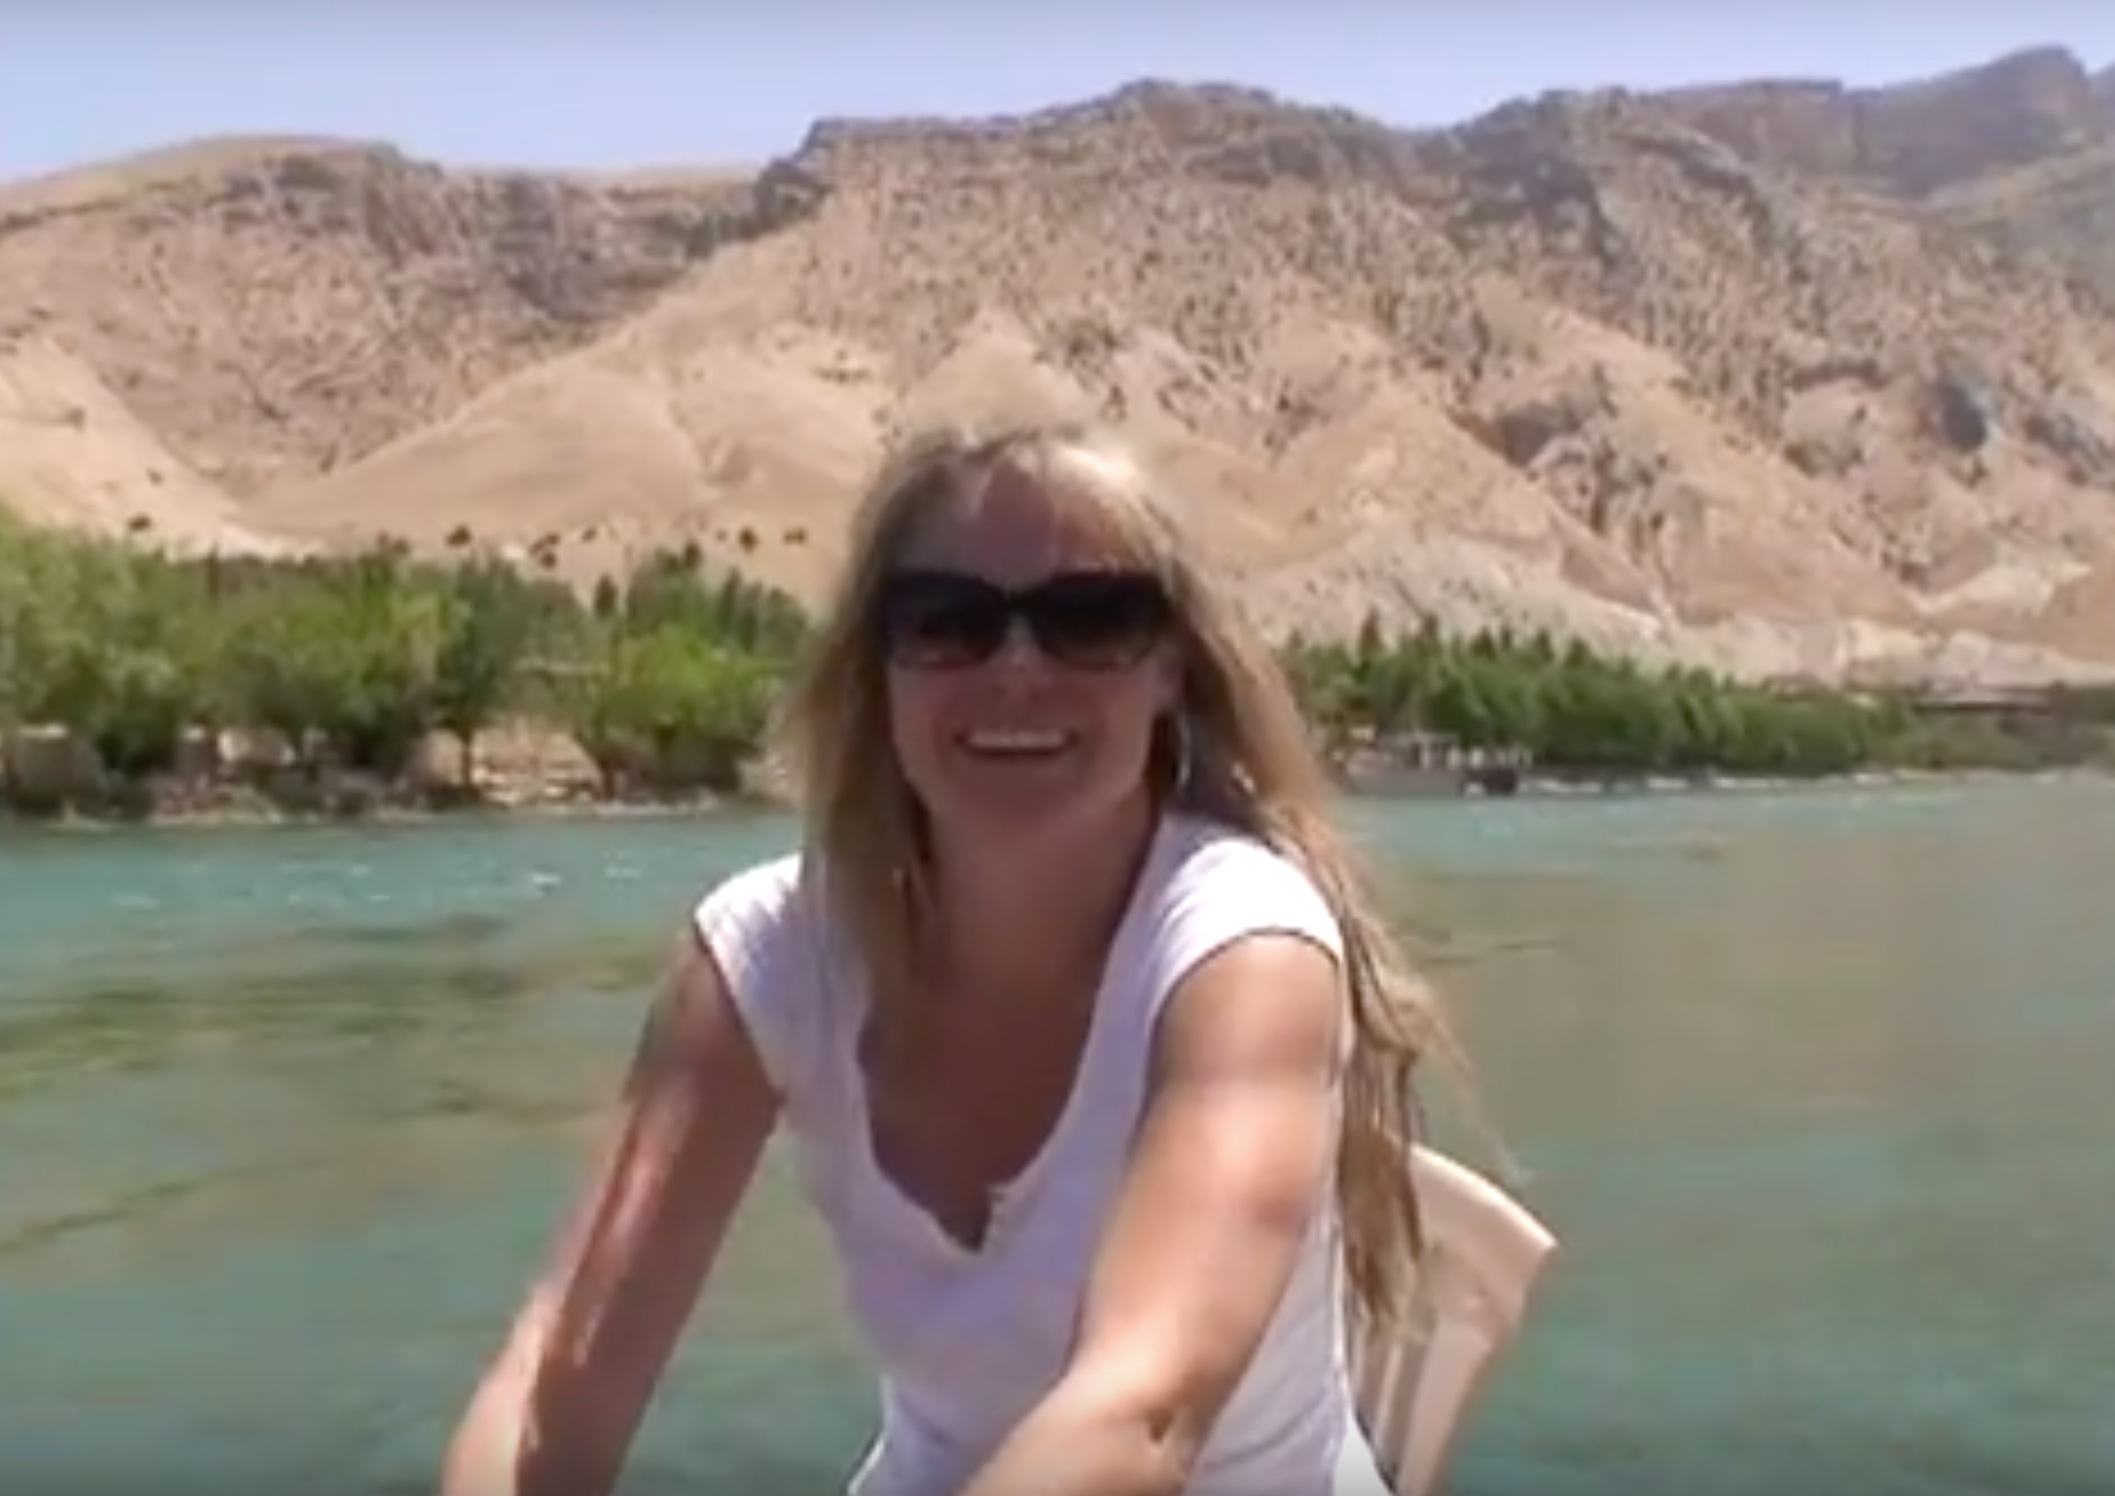 Simone on the river in Kurdistan